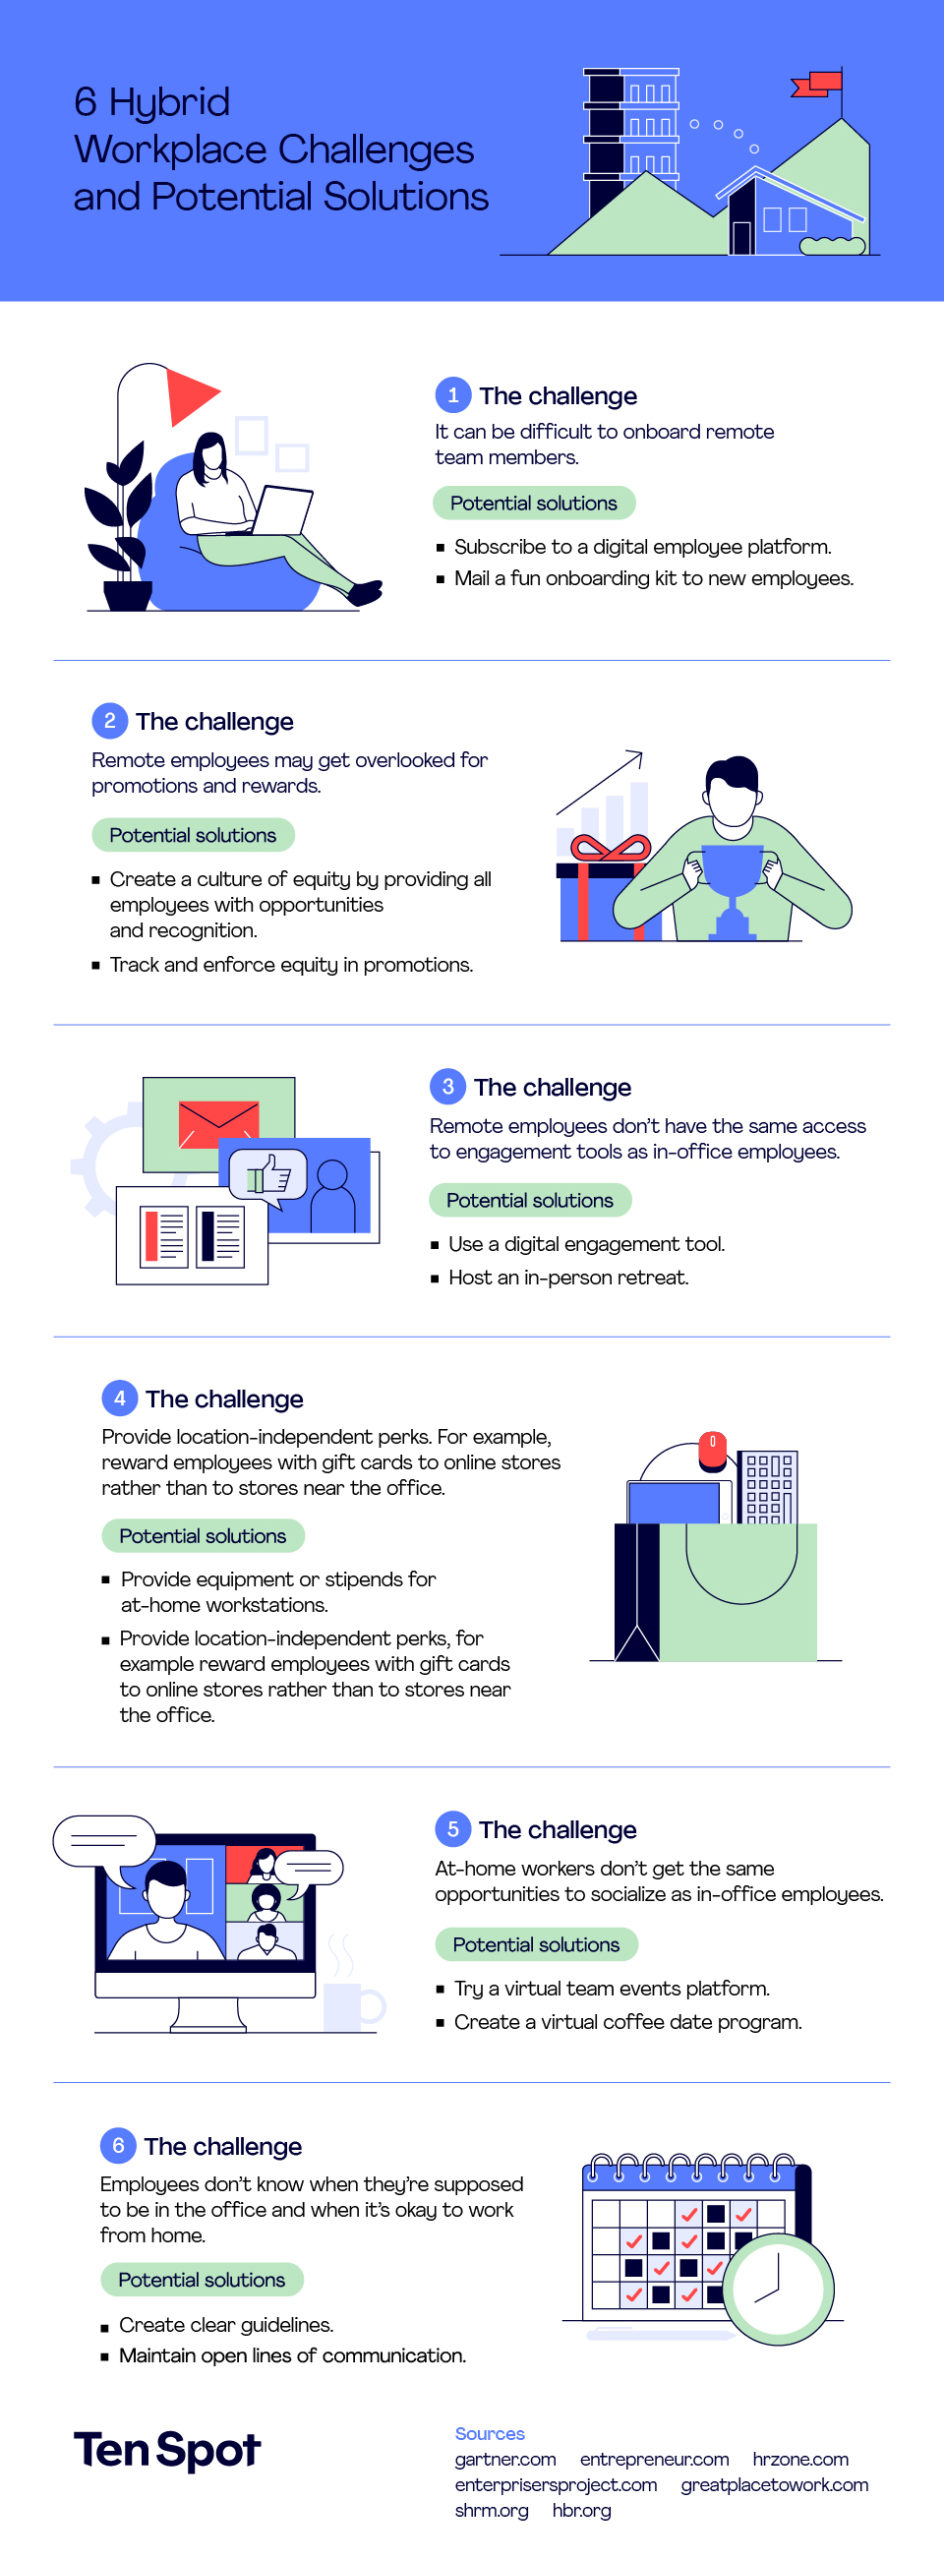 6 Hybrid Workplace Challenges and Potential Solutions